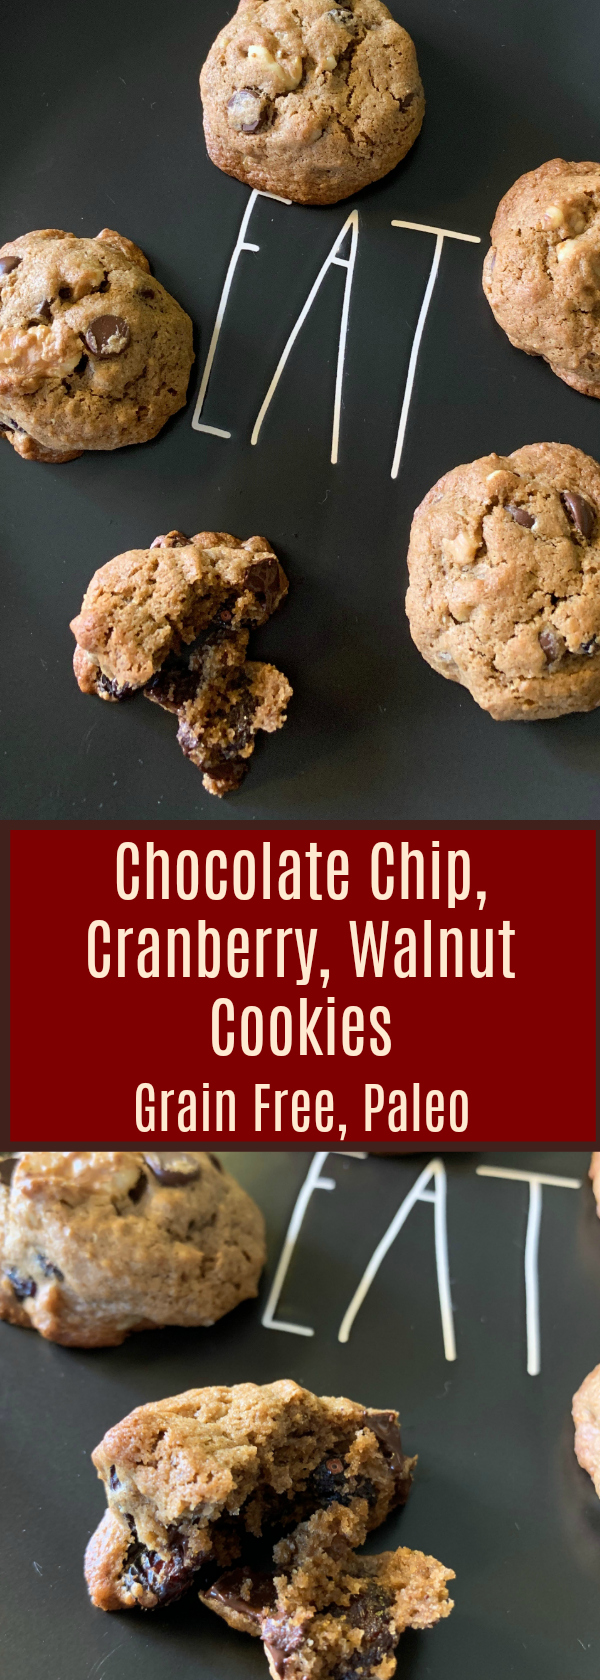 Chocolate Chip, Cranberry, Walnut Grain Free Cookies, Dairy Free, Paleo, Gluten Free